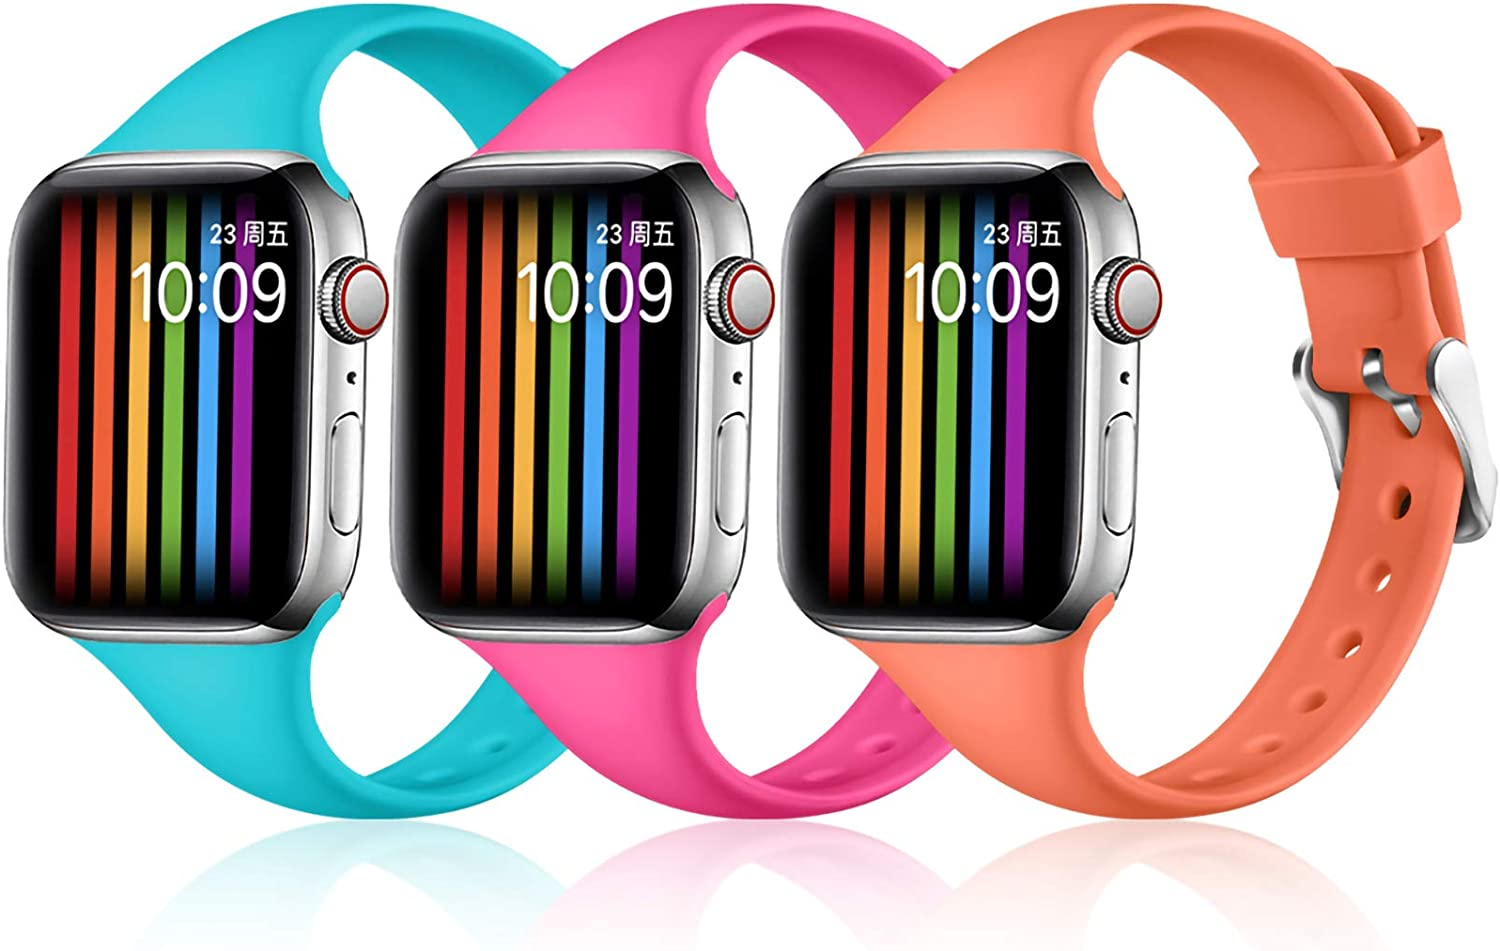 Easuny Slim Band Compatible with Apple Watch 40mm 38mm Women Men, Soft Thin Silicone Strap for Apple Watch SE Series 6 5 4 /3 2 1 Replacement Accessory,(Teal/Rose Red/Coral) M/L